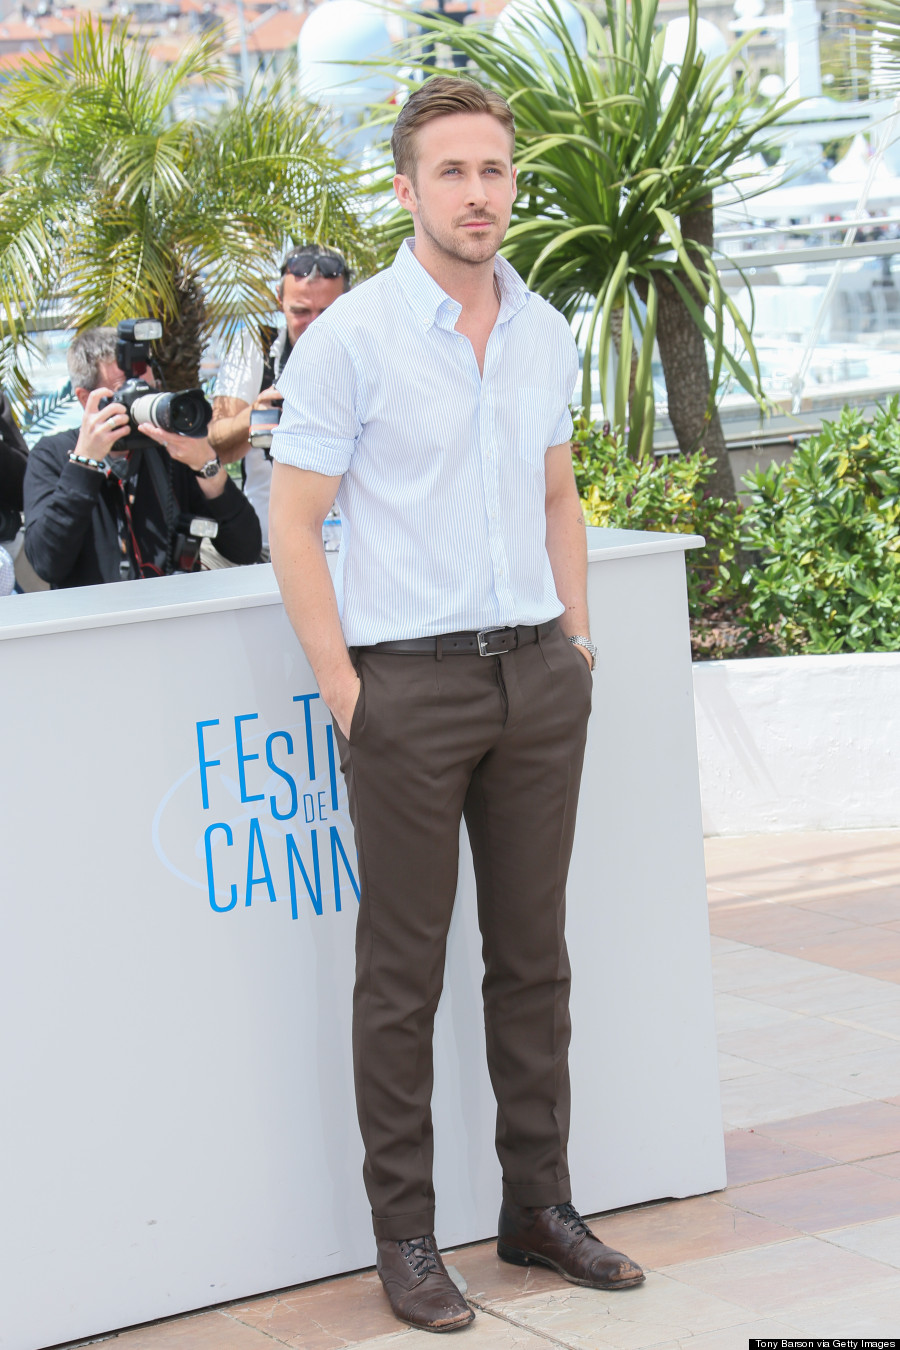 The Photos Of Ryan Gosling In Cannes That We've Been Waiting For